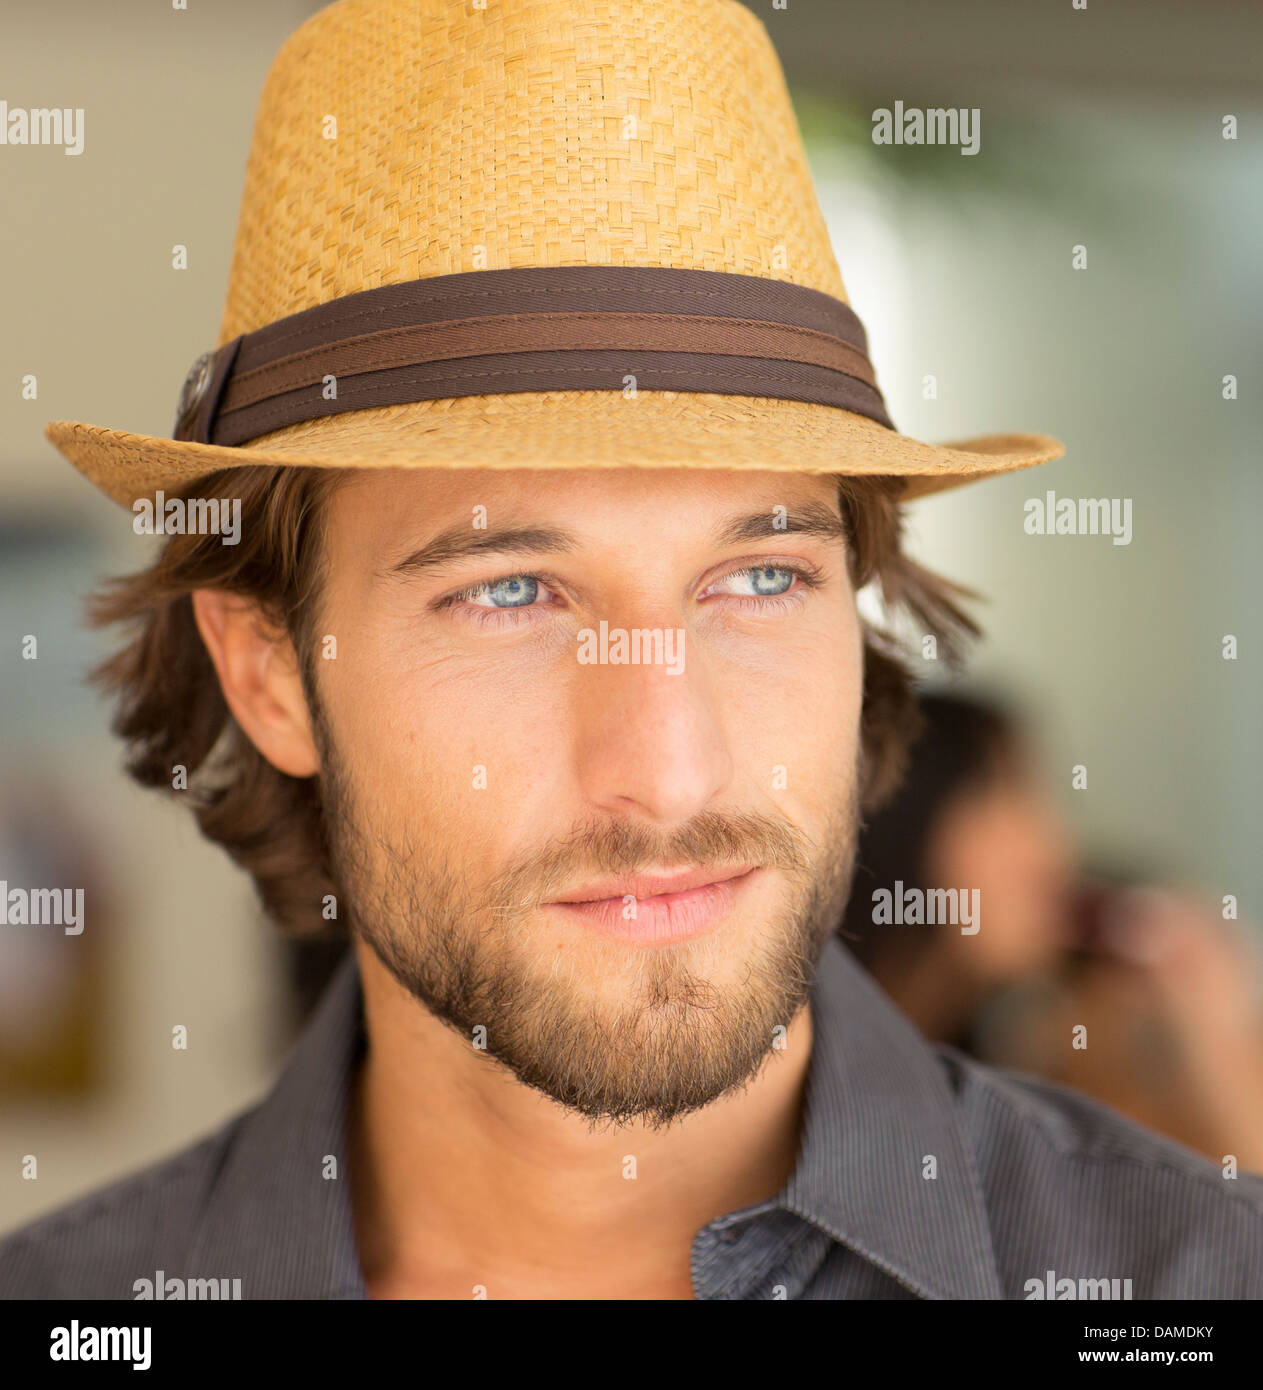 Smiling man wearing straw hat - Stock Image